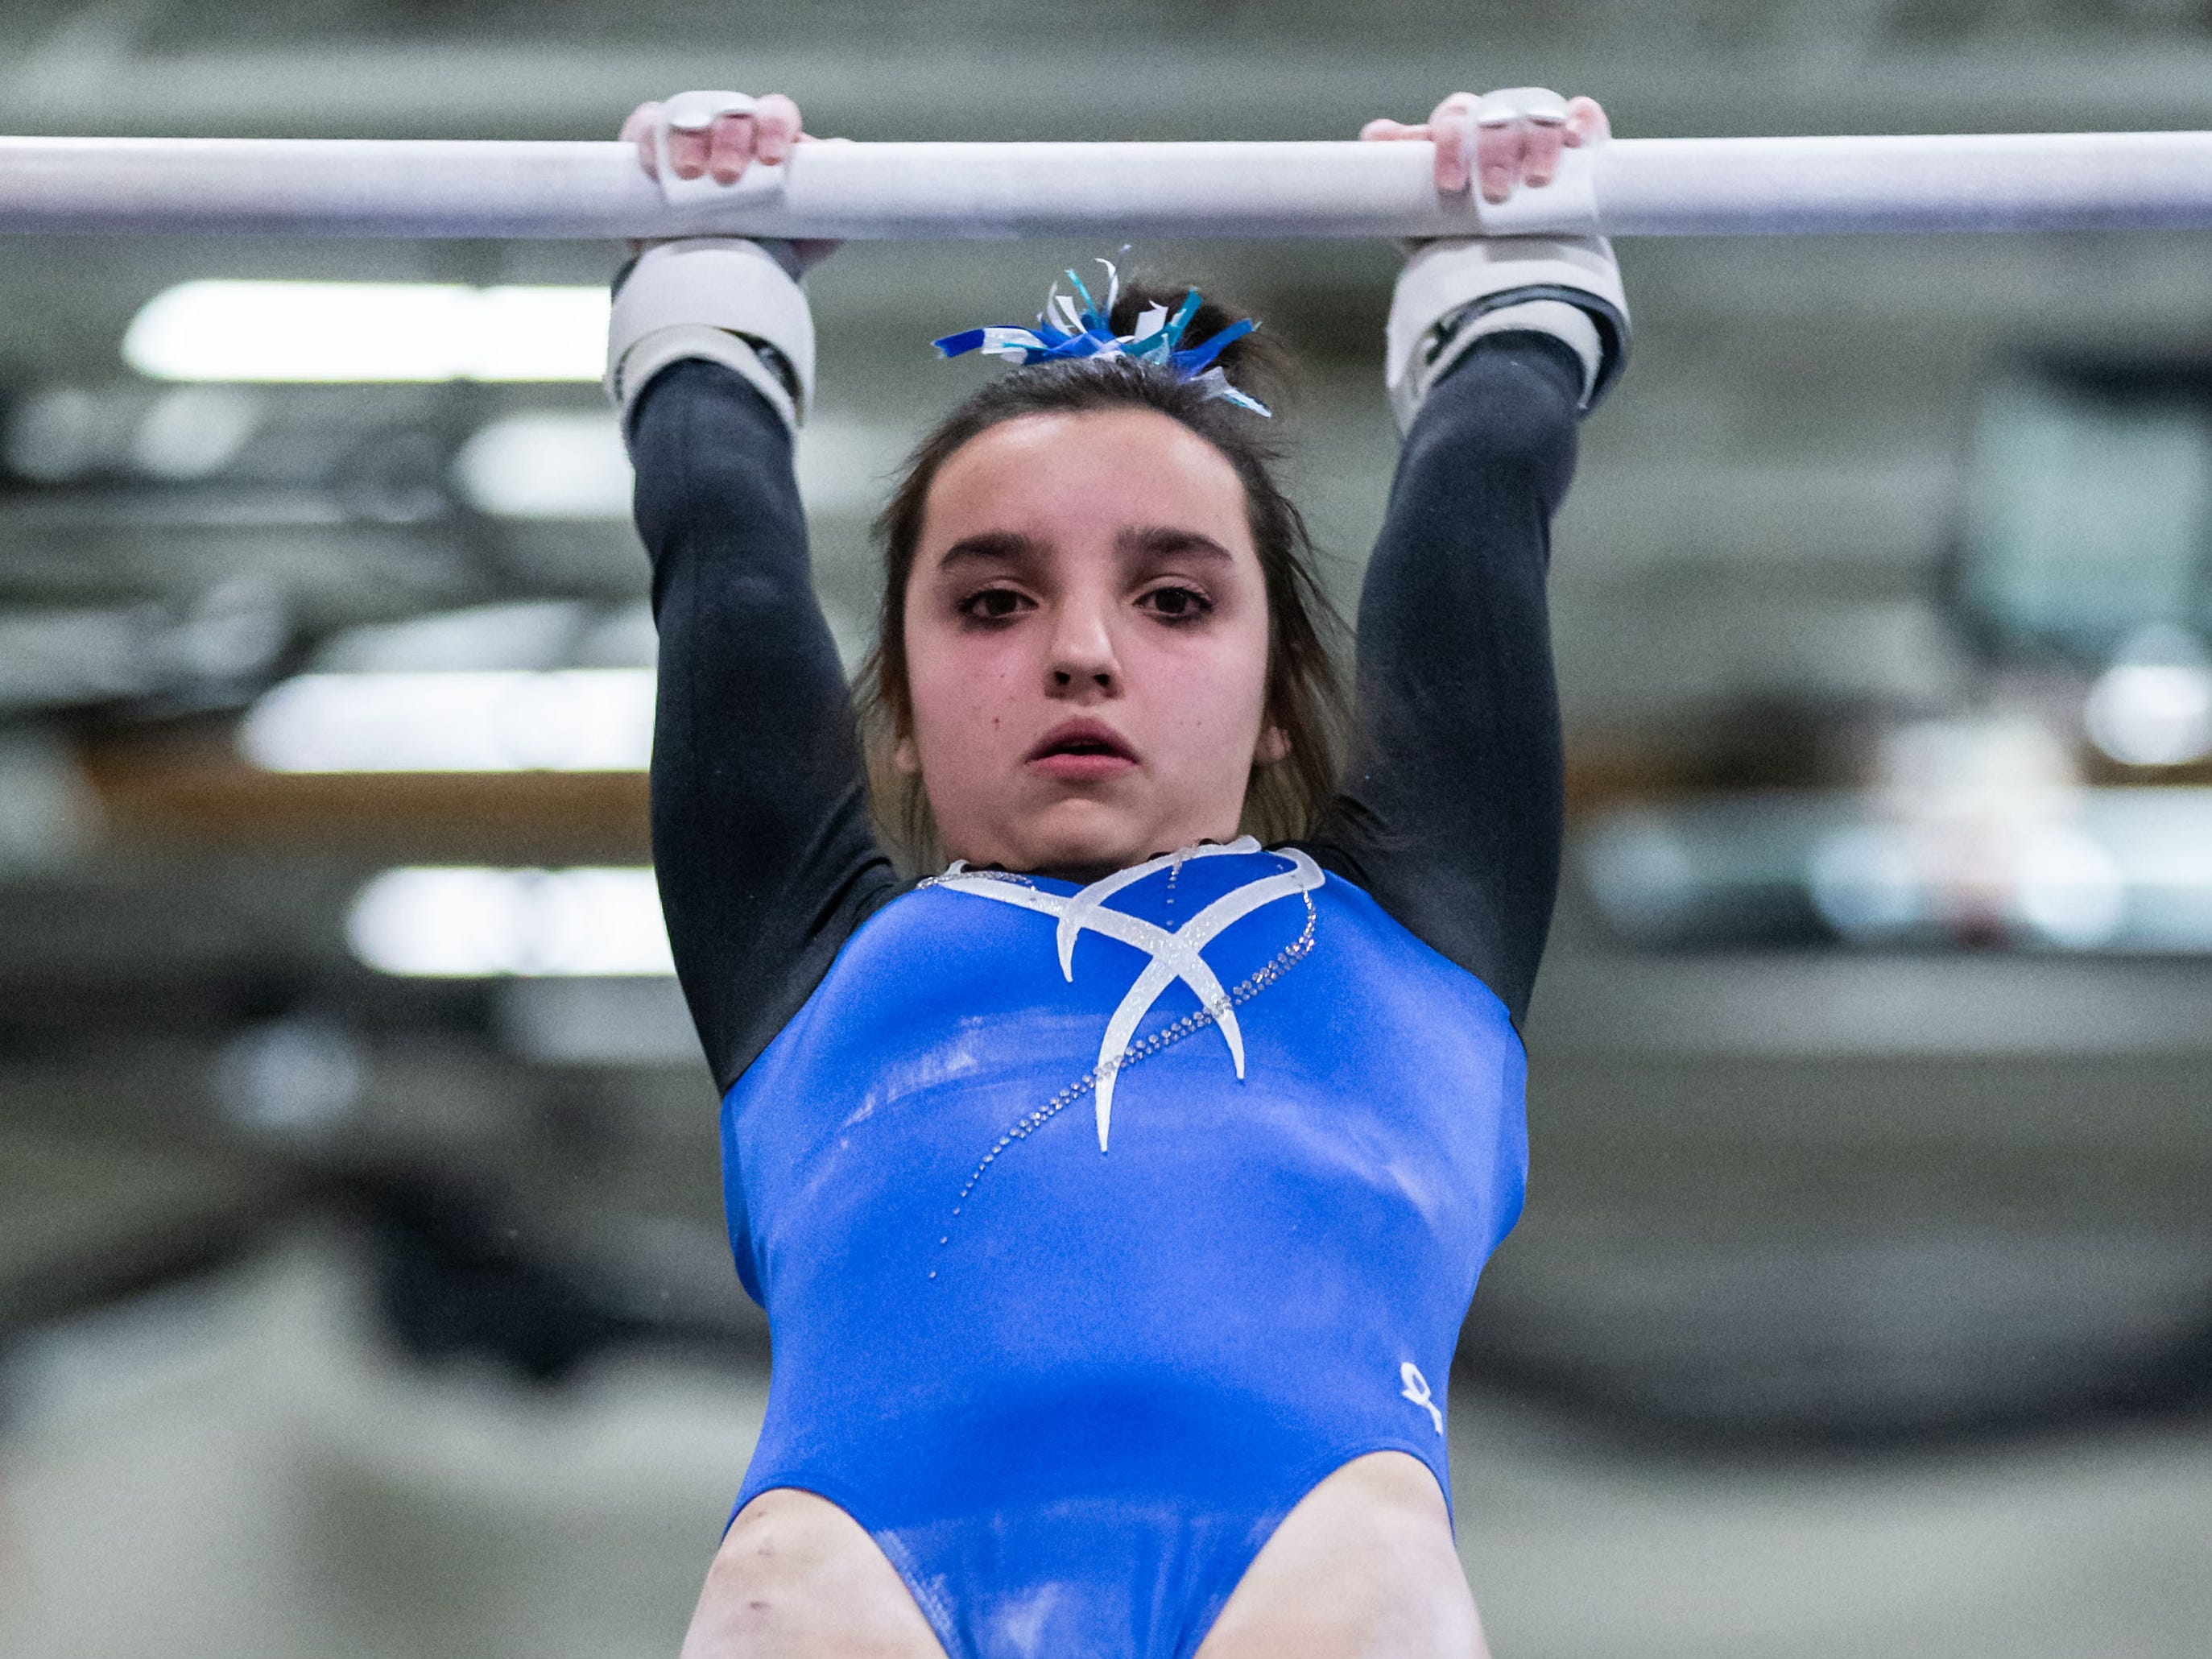 Nicolet gymnast Ava Sahin competes on the bars during the meet at home against Whitefish Bay on Thursday, Jan. 3, 2019.